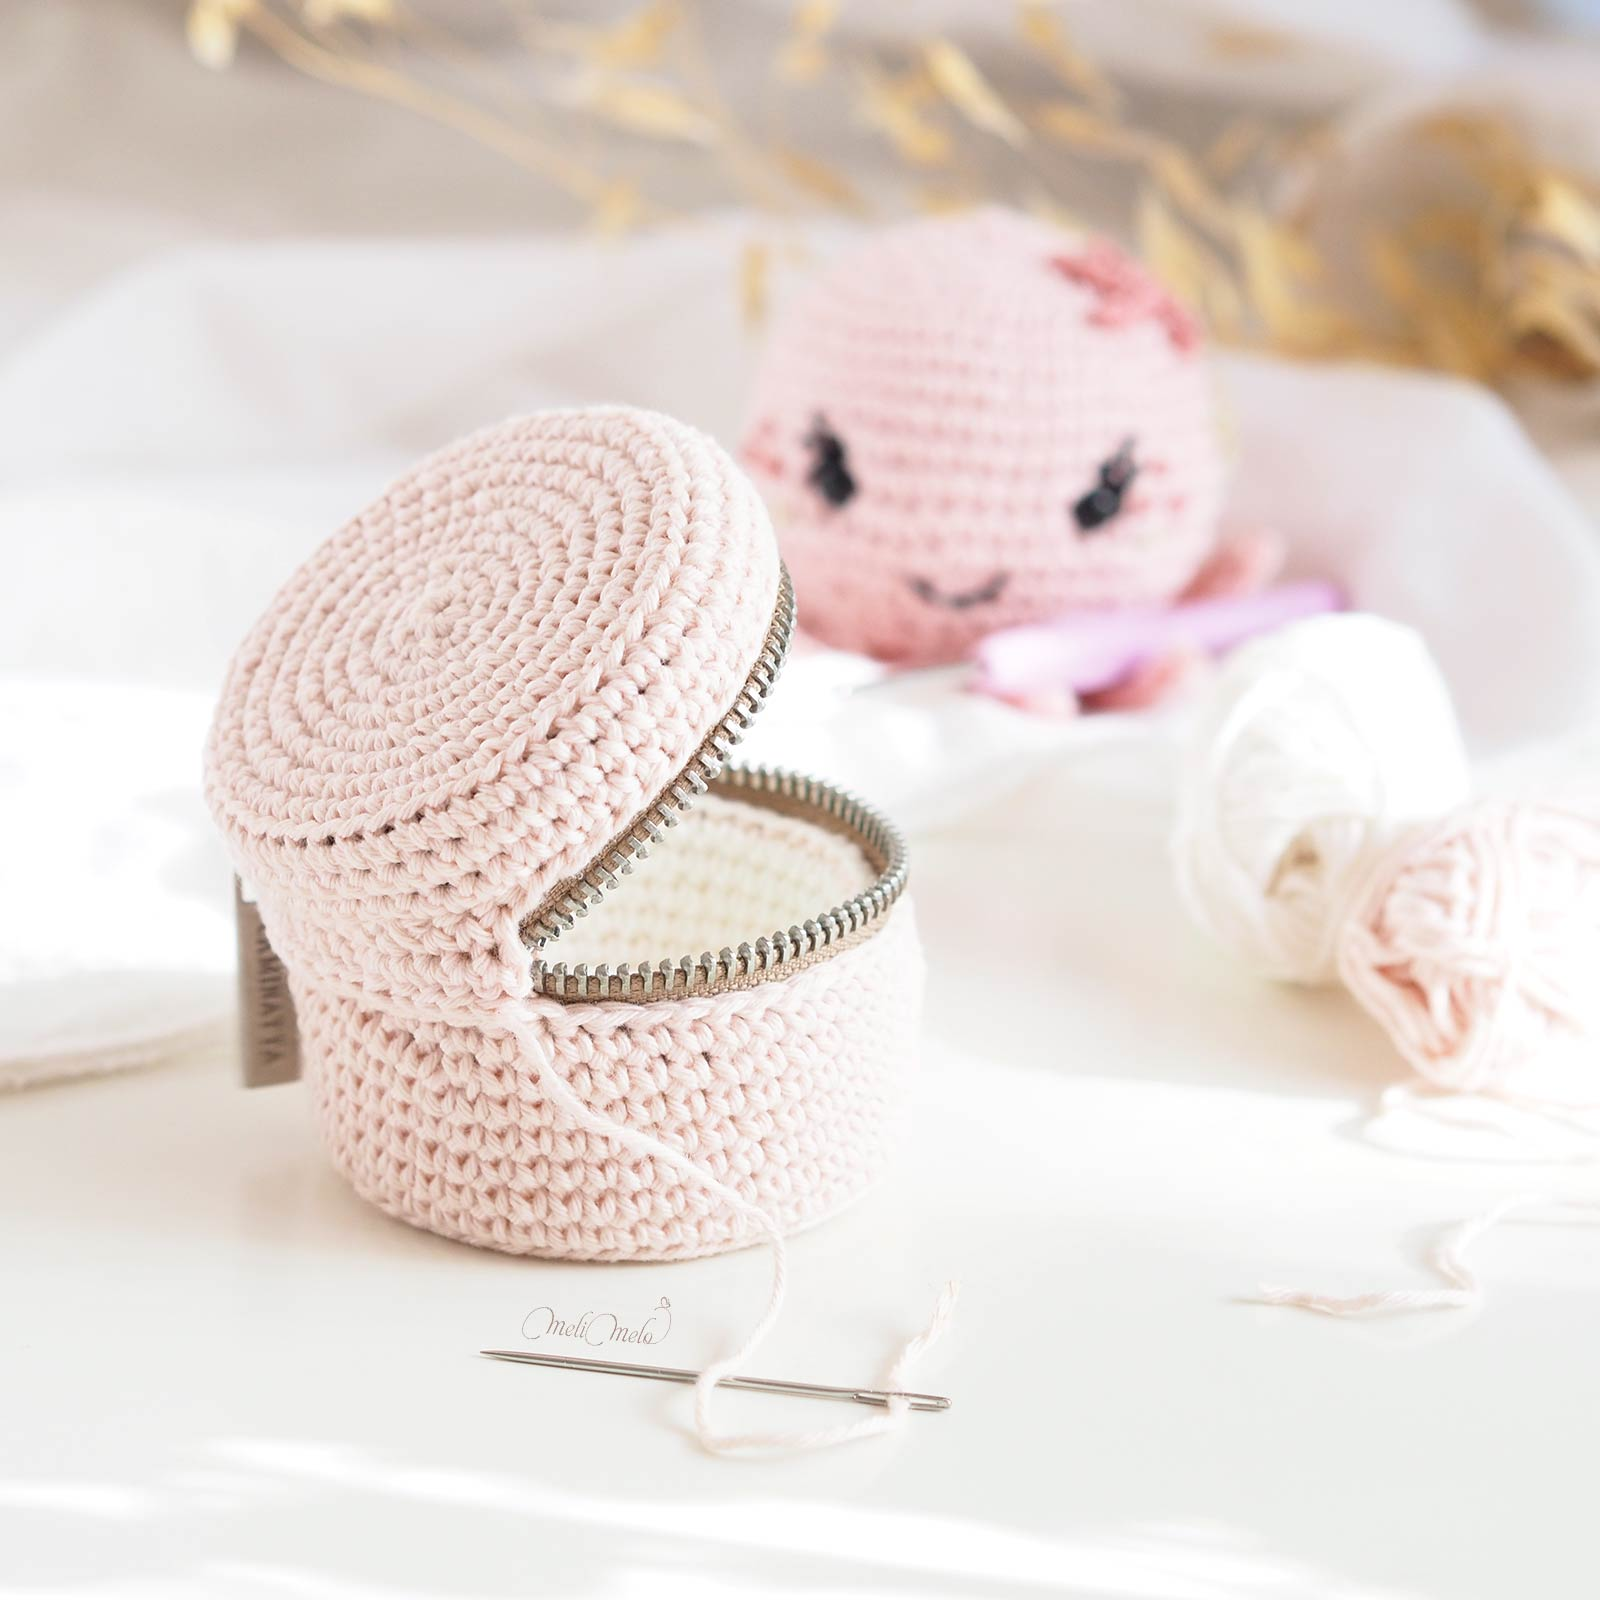 boite-maquillage-crochet-coton-upcycling-cousette-02-laboutiquedemelimelo